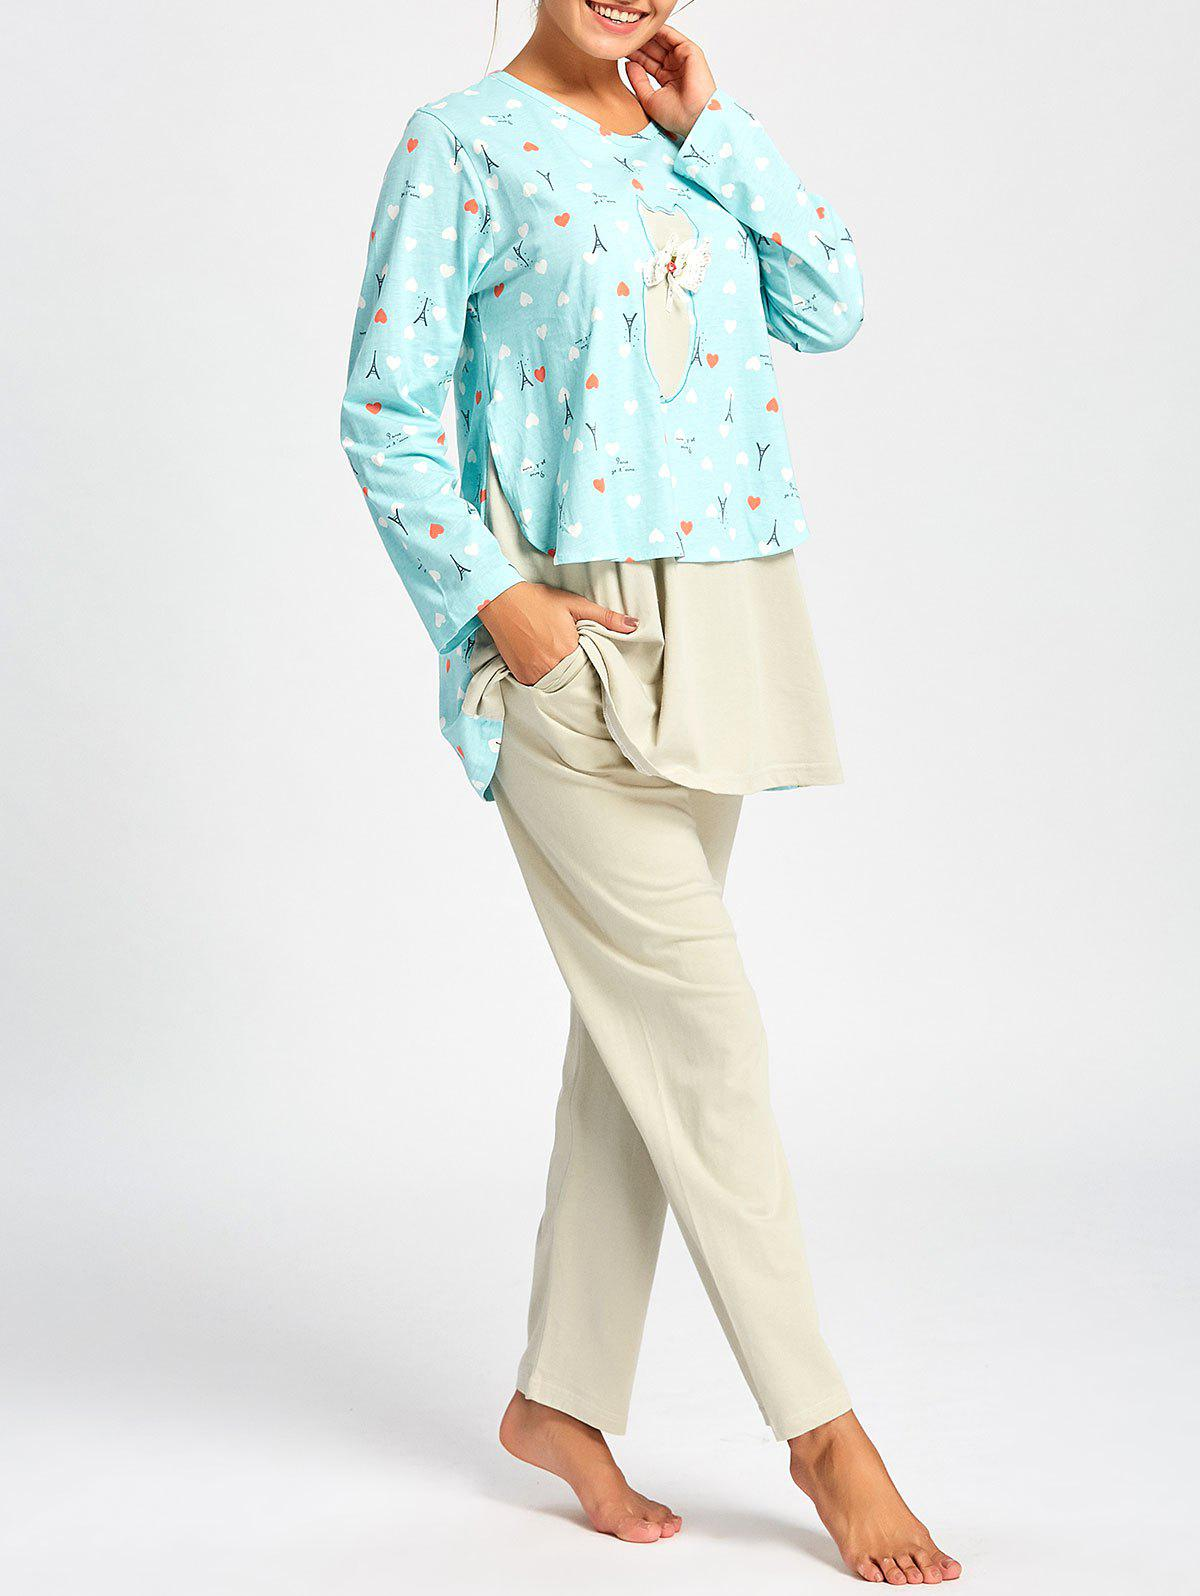 Long Sleeve Nursing PJ Set with Pattern - CLOUDY XL